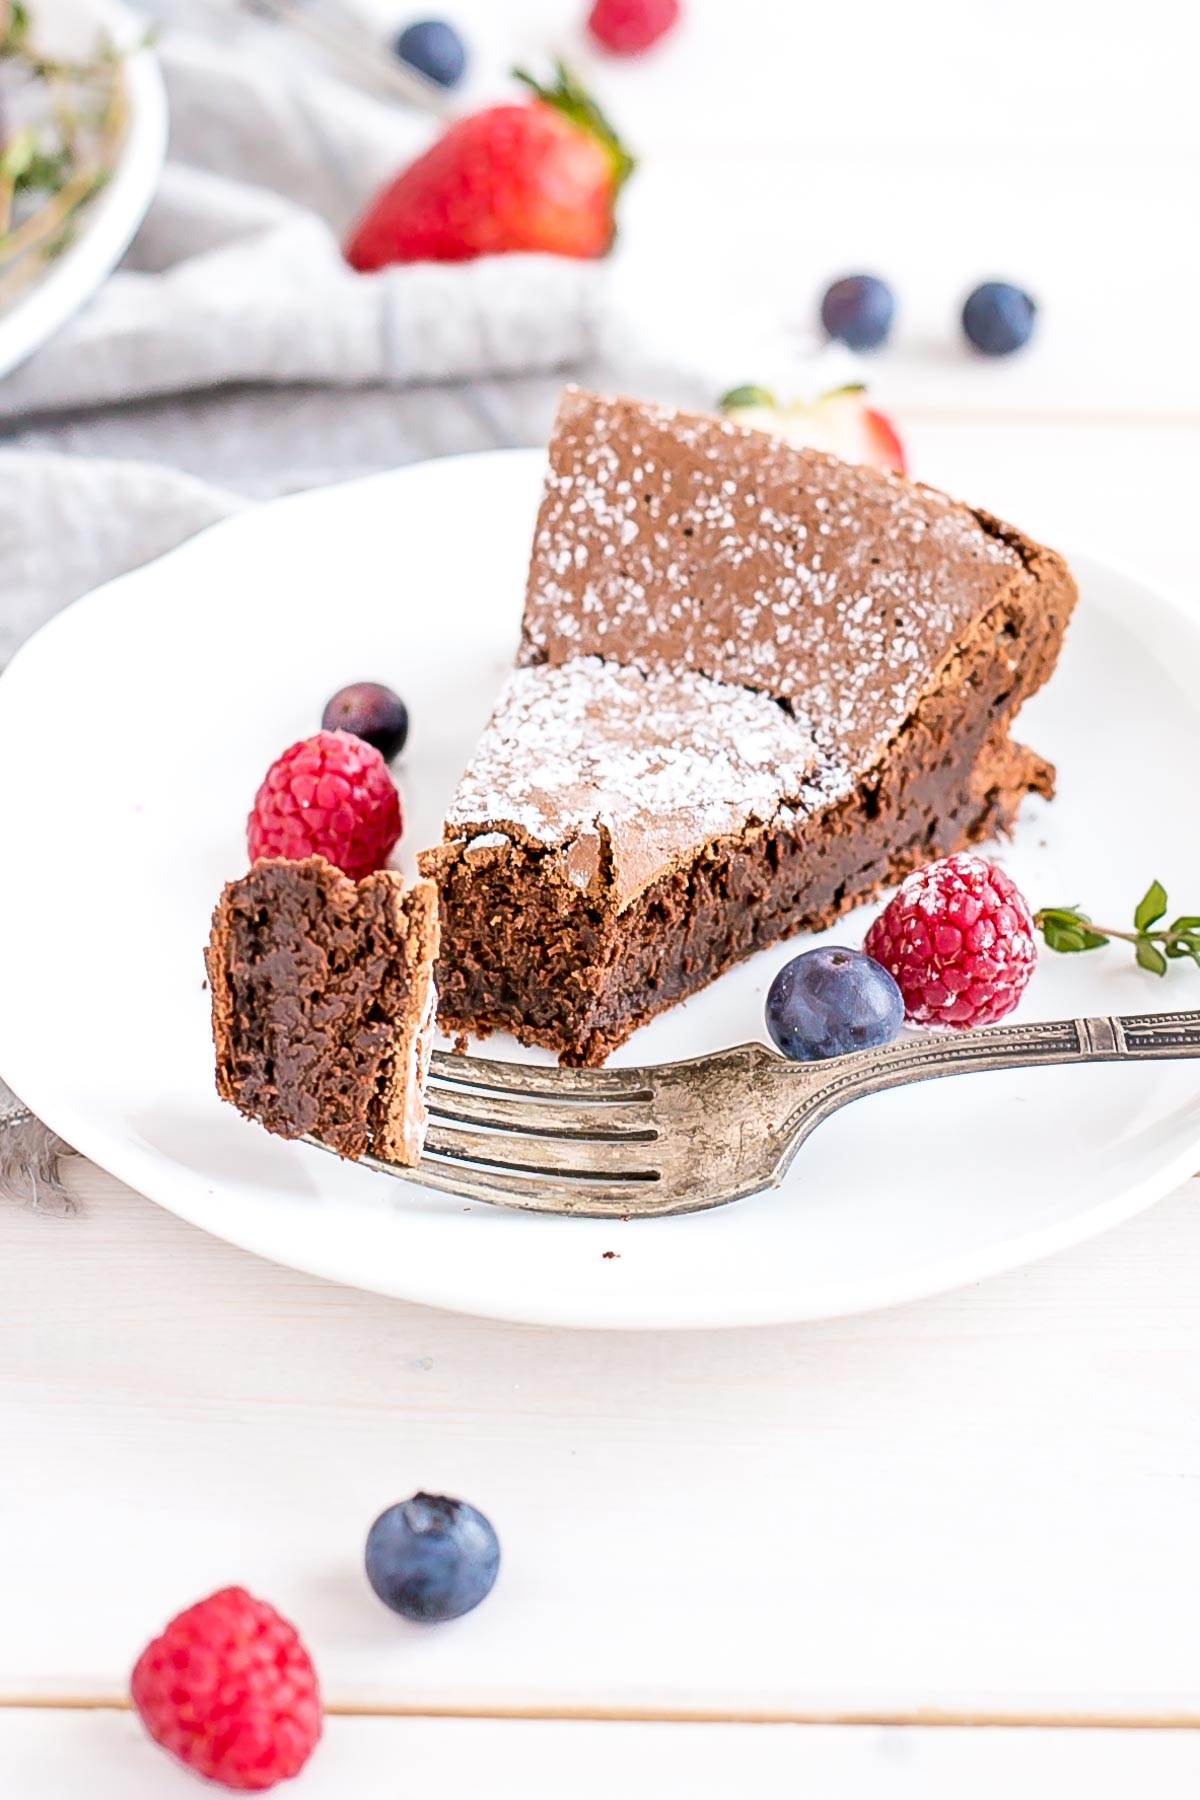 A slice of cake on a plate